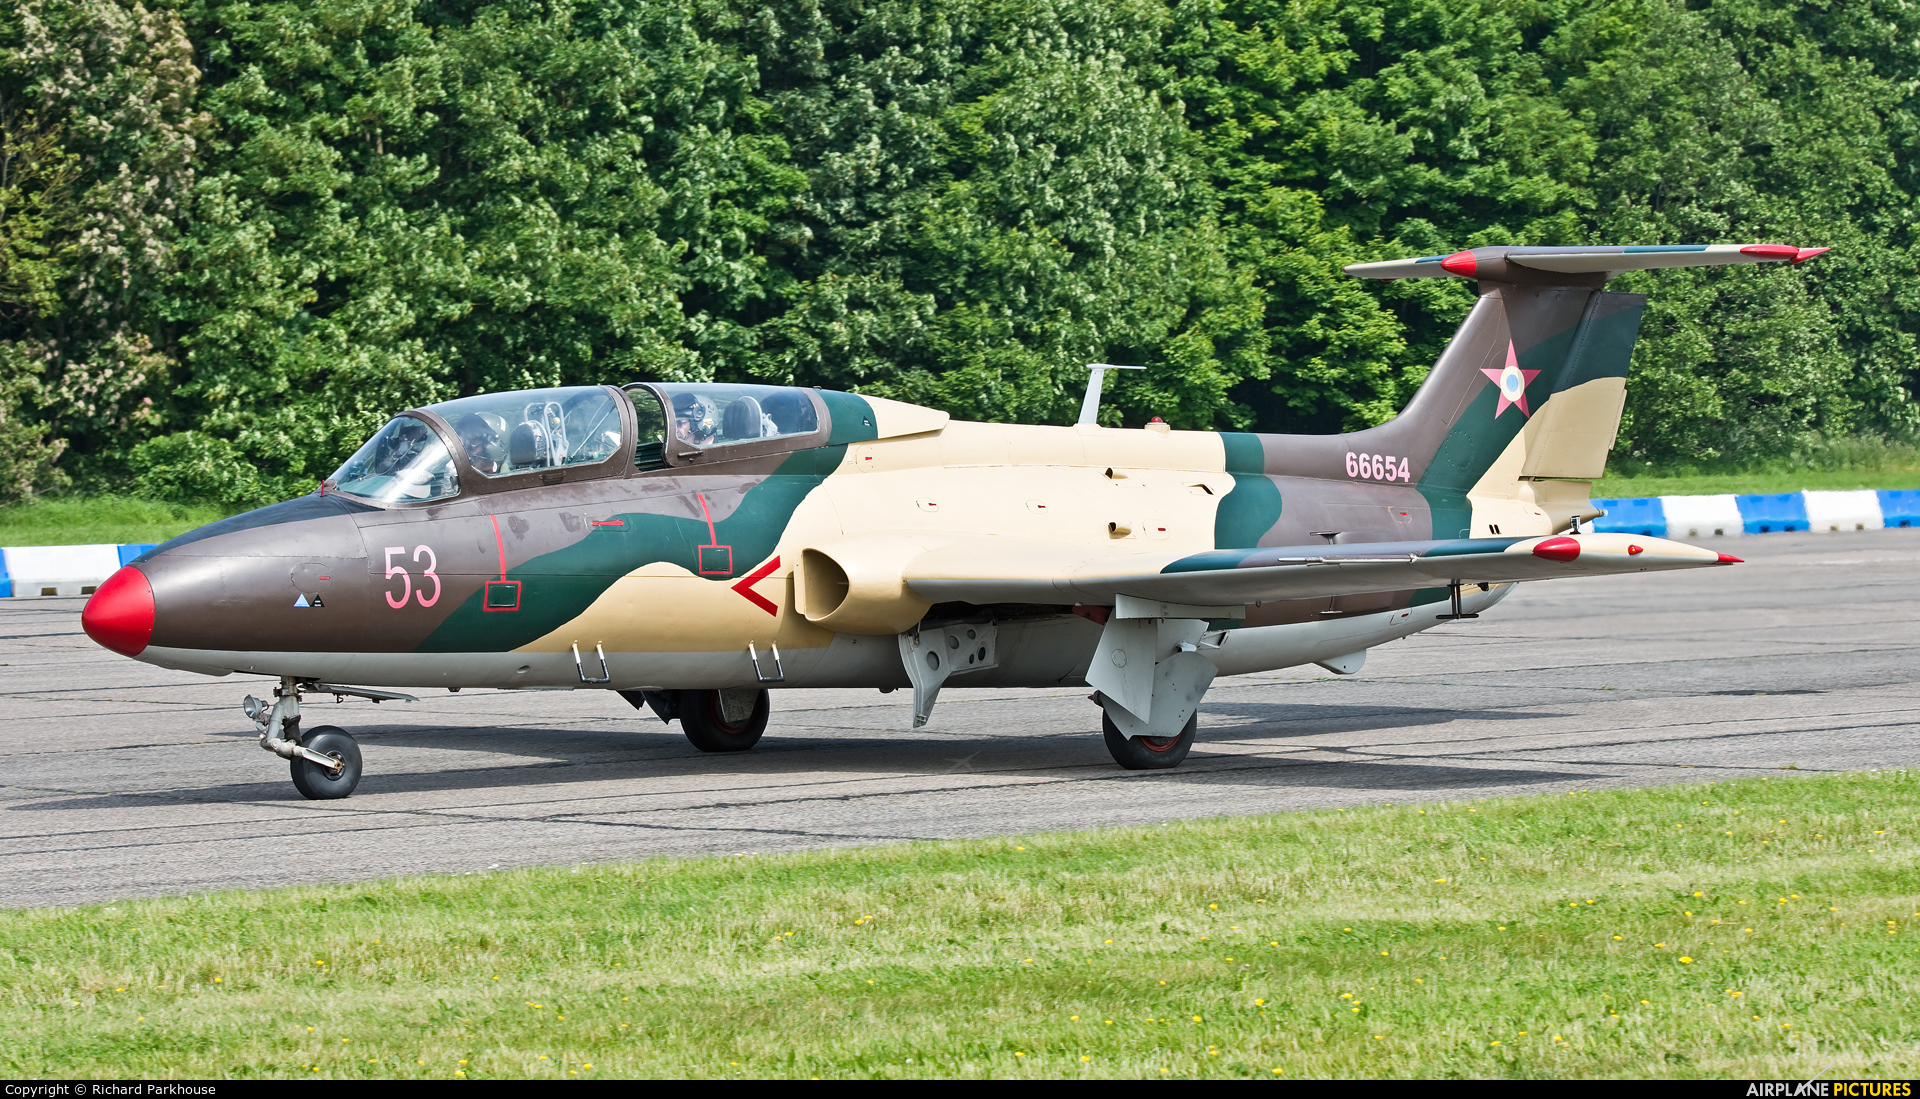 Romania - Air Force 66654 aircraft at Bruntingthorpe